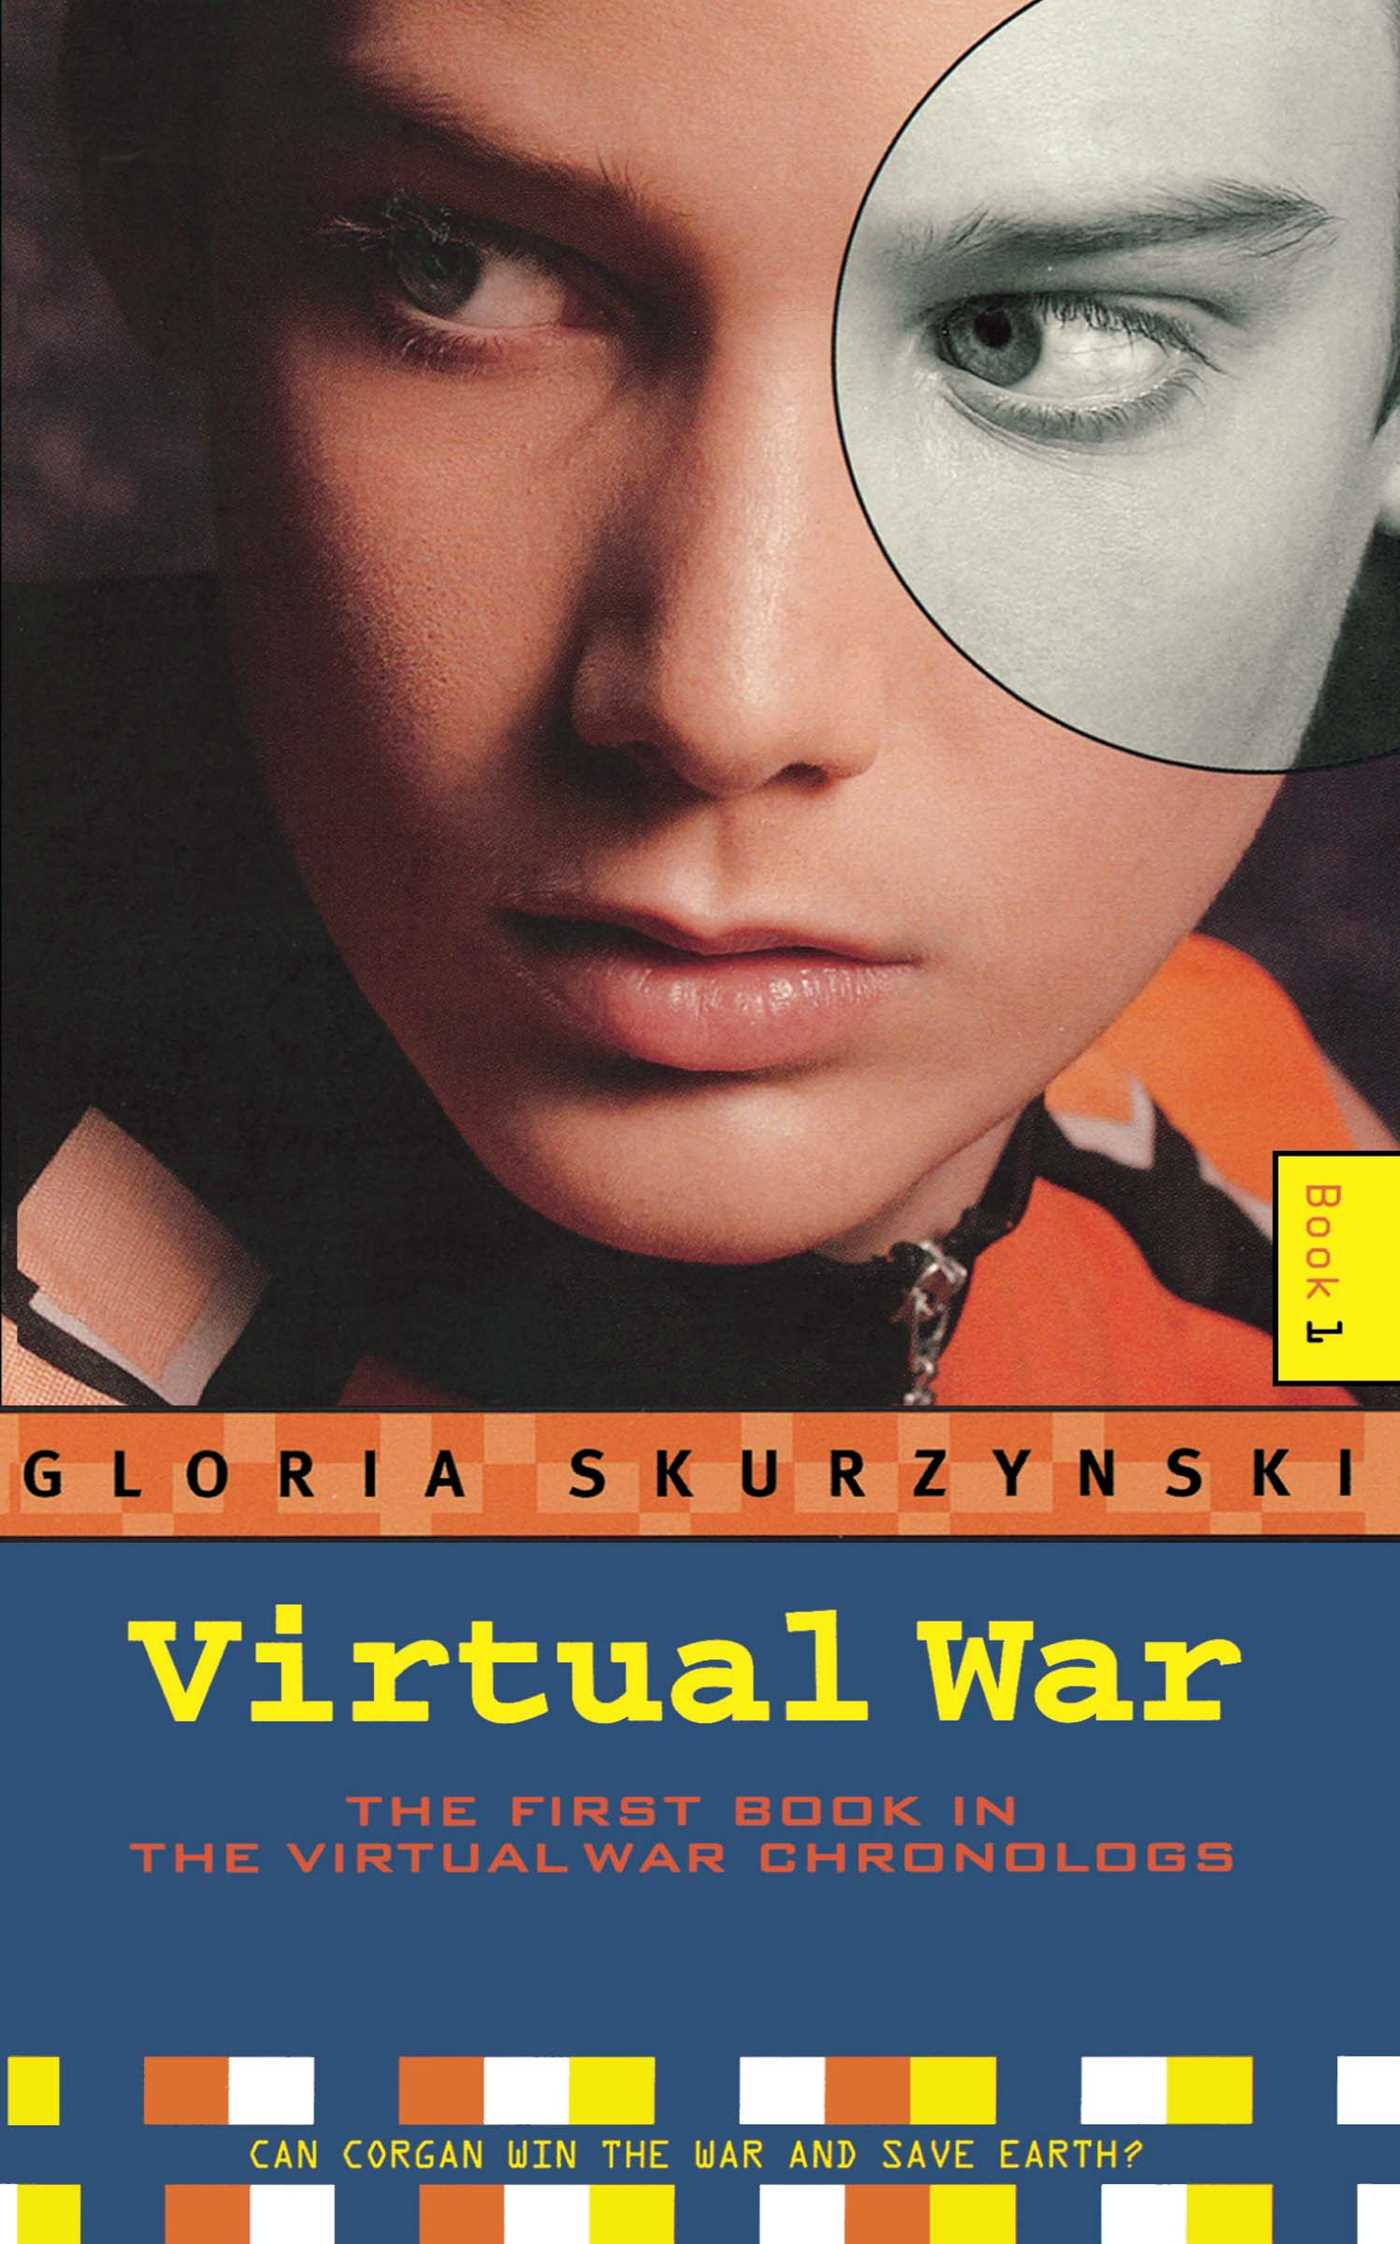 a review of virtual war a book by gloria skurzynski Virtual war: the virtual war chronologs--book 1 epub books by gloria skurzynski imagine a life of virtual reality -- a childhood contained in a controlled environment, with no human contact or experie.